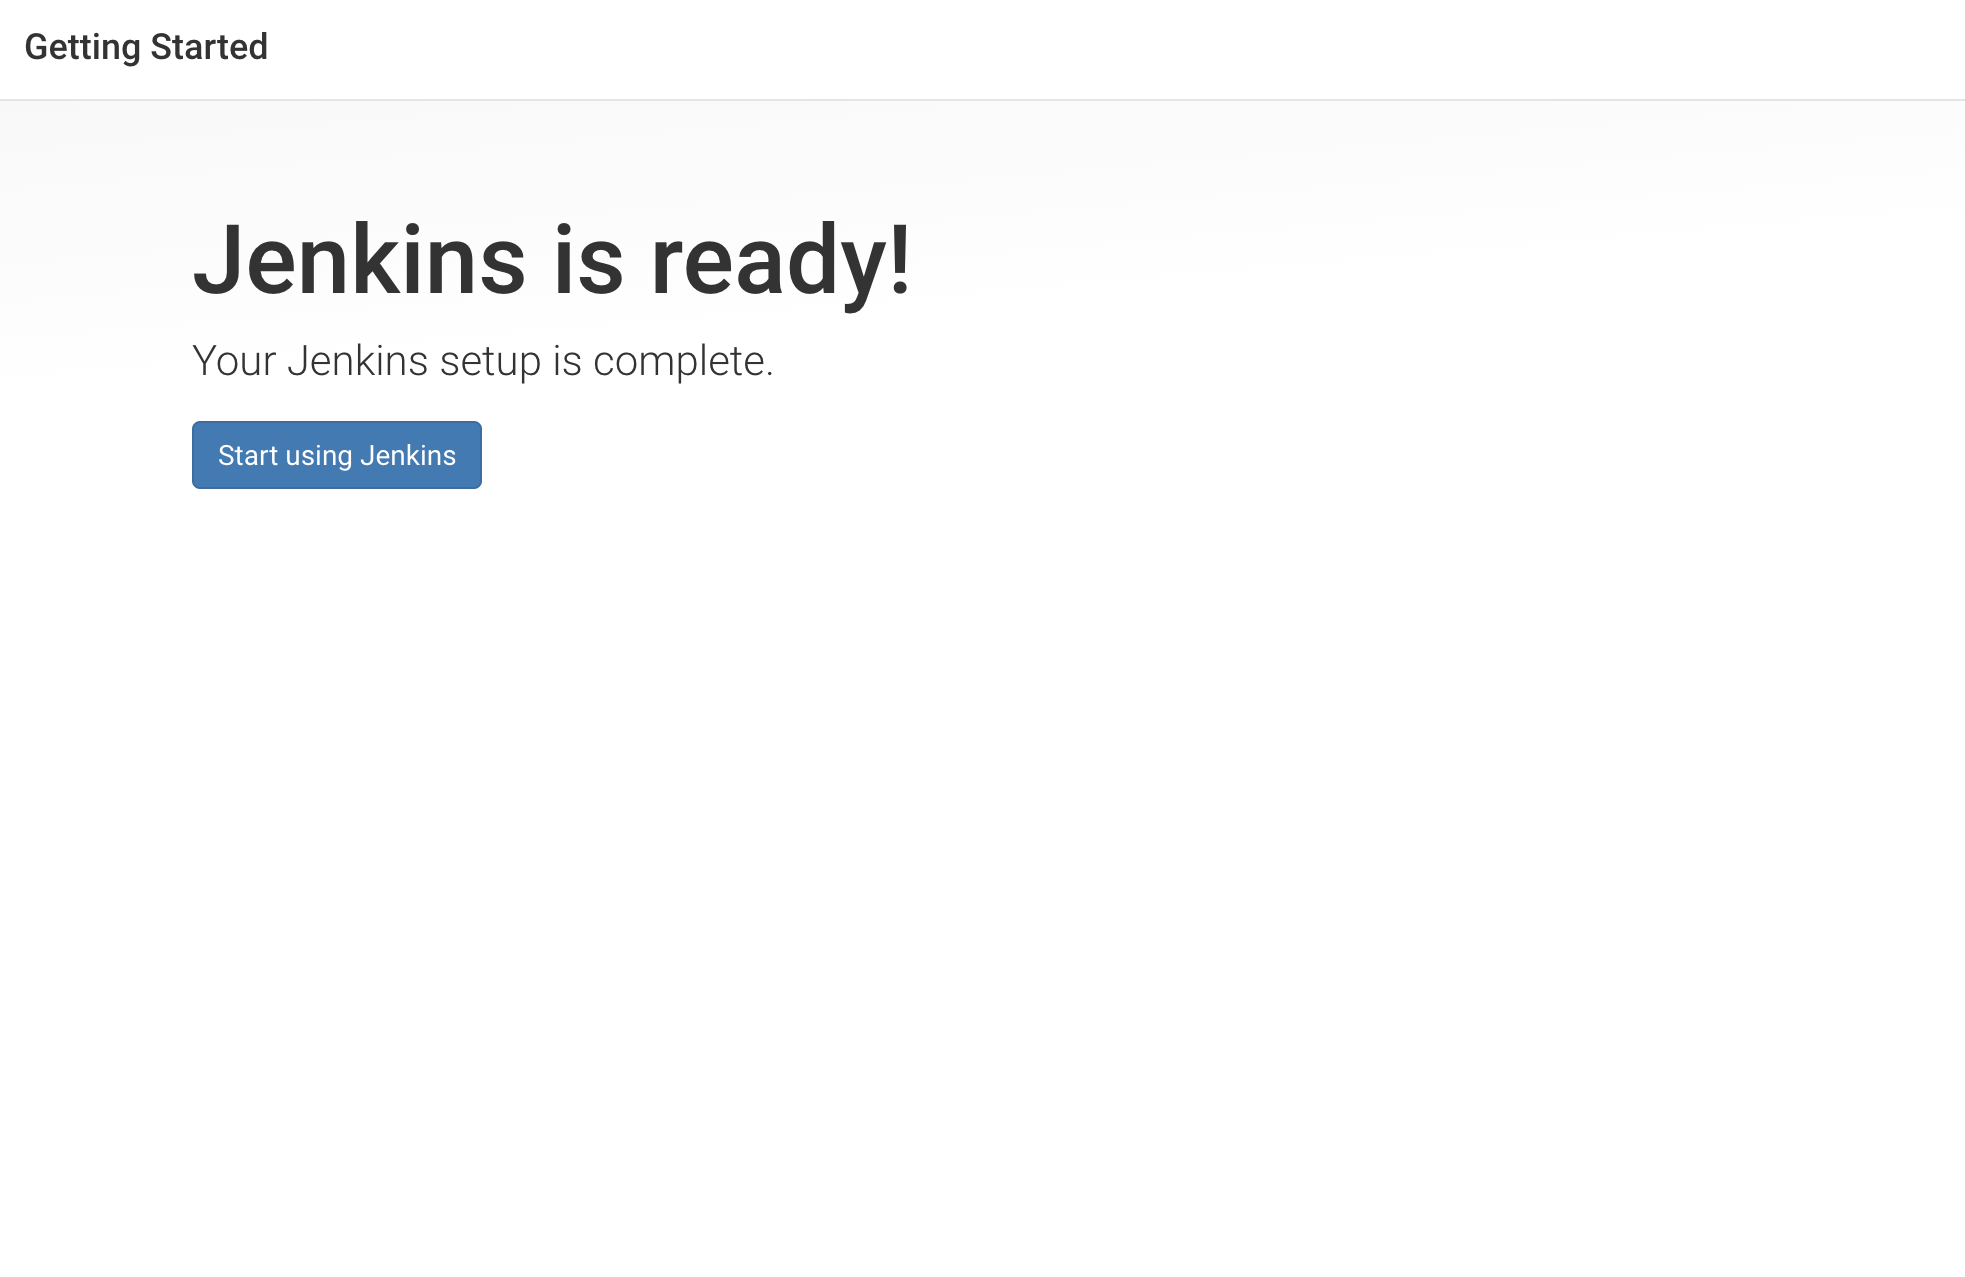 Jenkins is ready screen